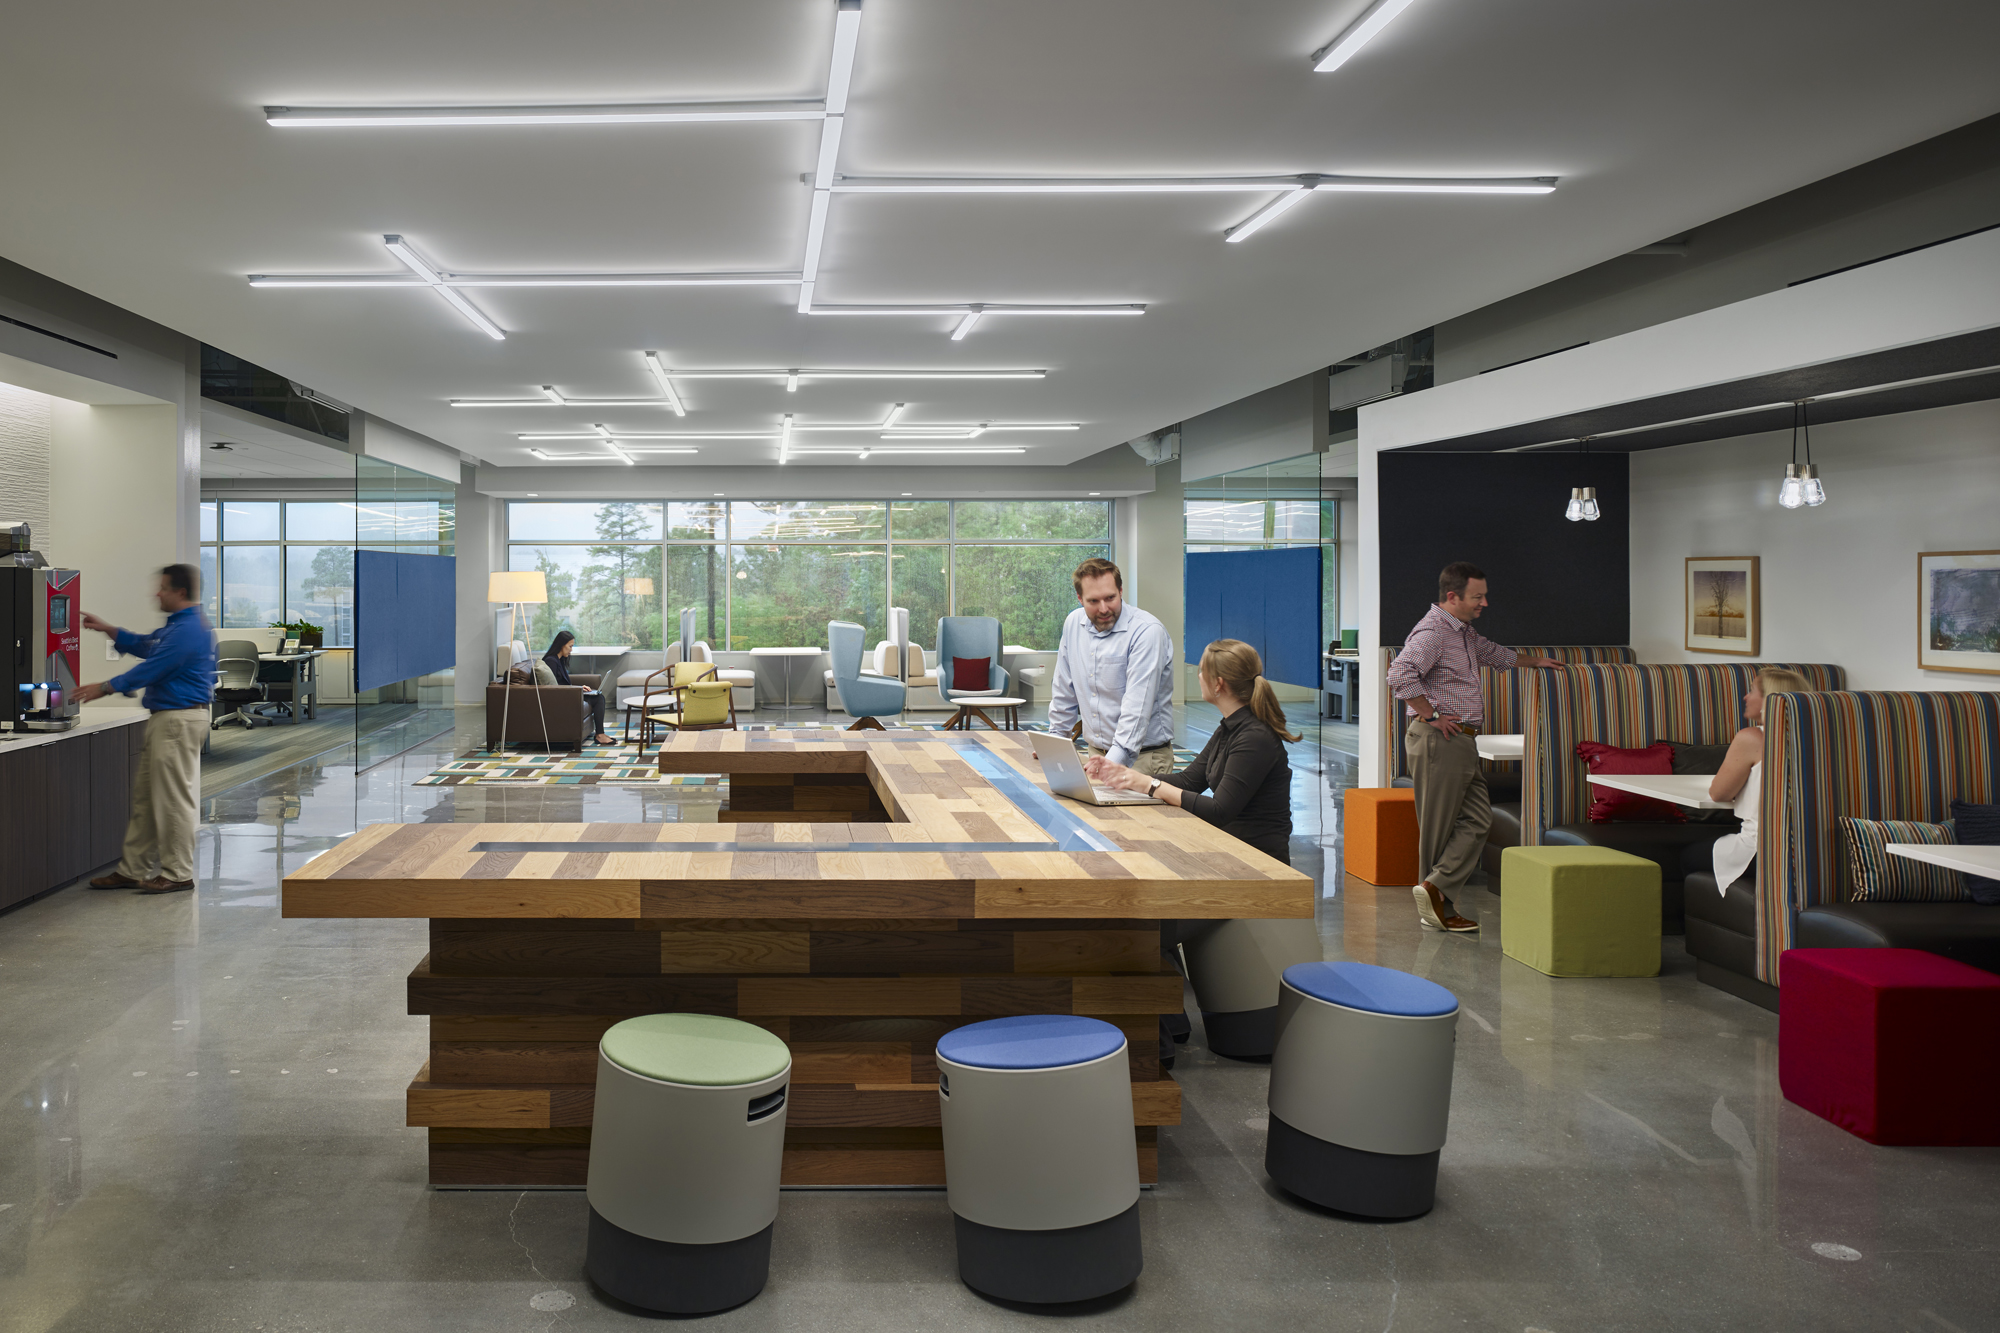 What Gensler 39 S Workplace Survey Tells Us About The Future Of The Office Architect Magazine